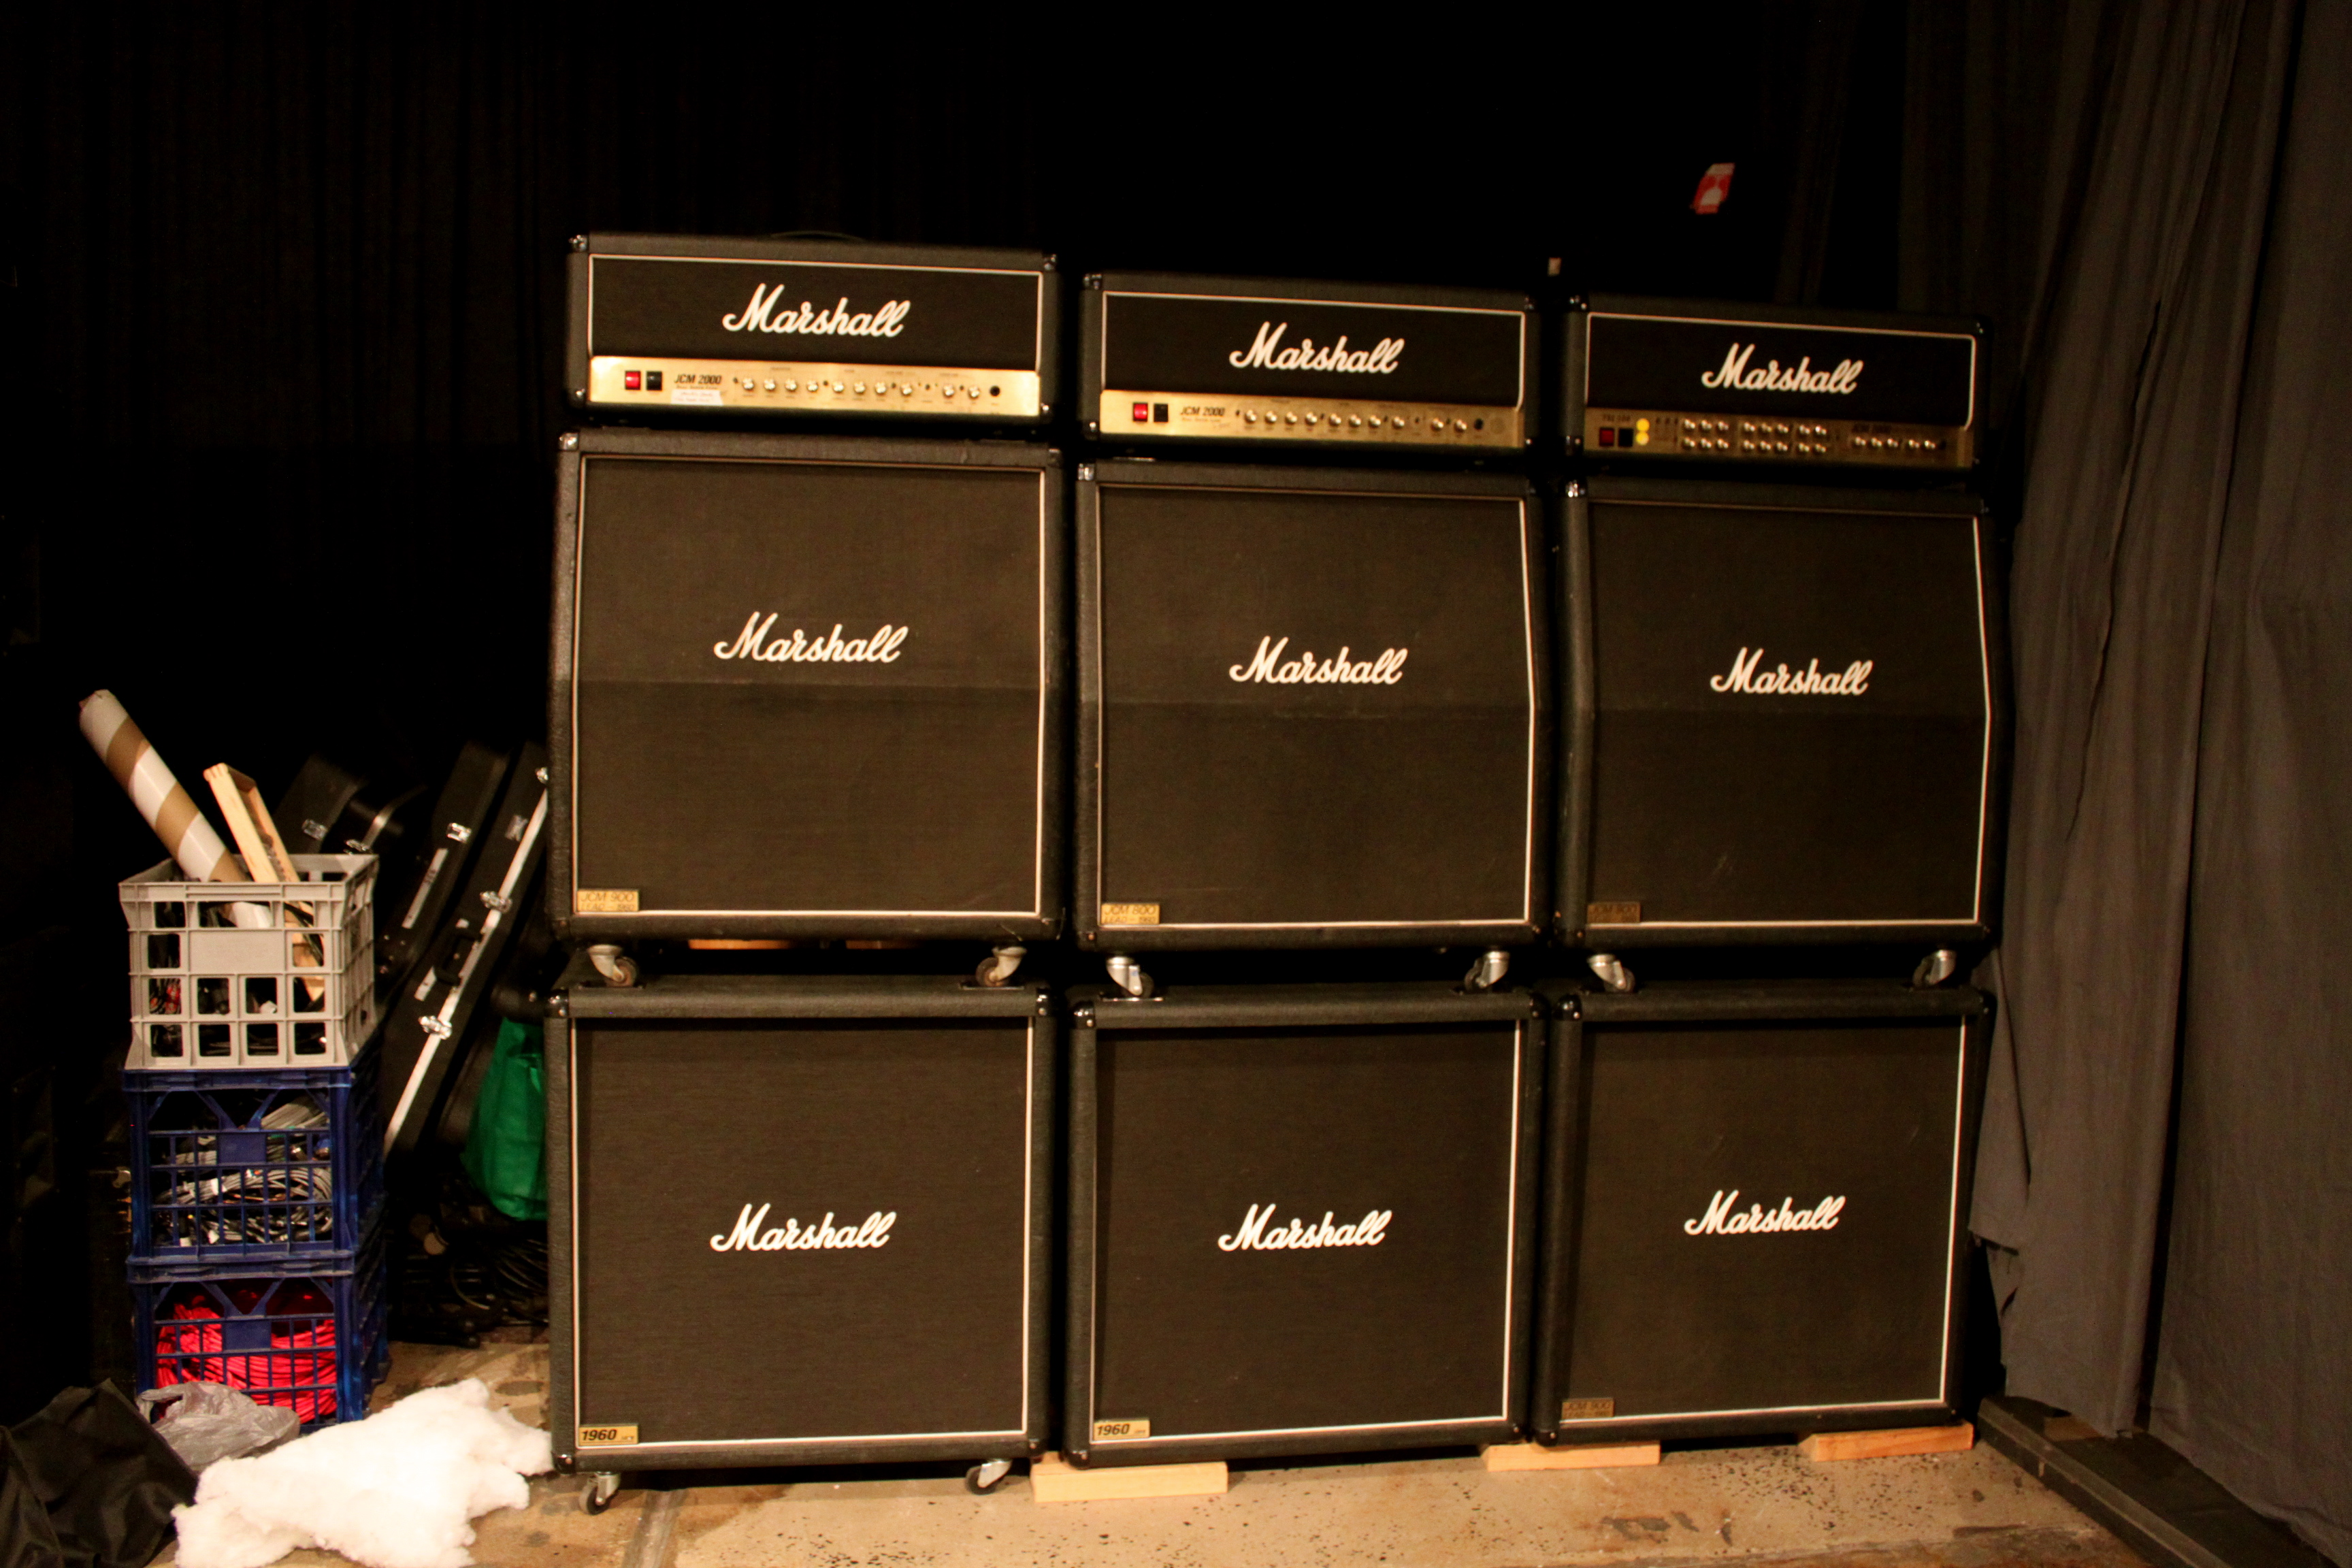 The Wall Of Marshall Stacks It Goes Past 11 To 12 Flickr Photo Sharing